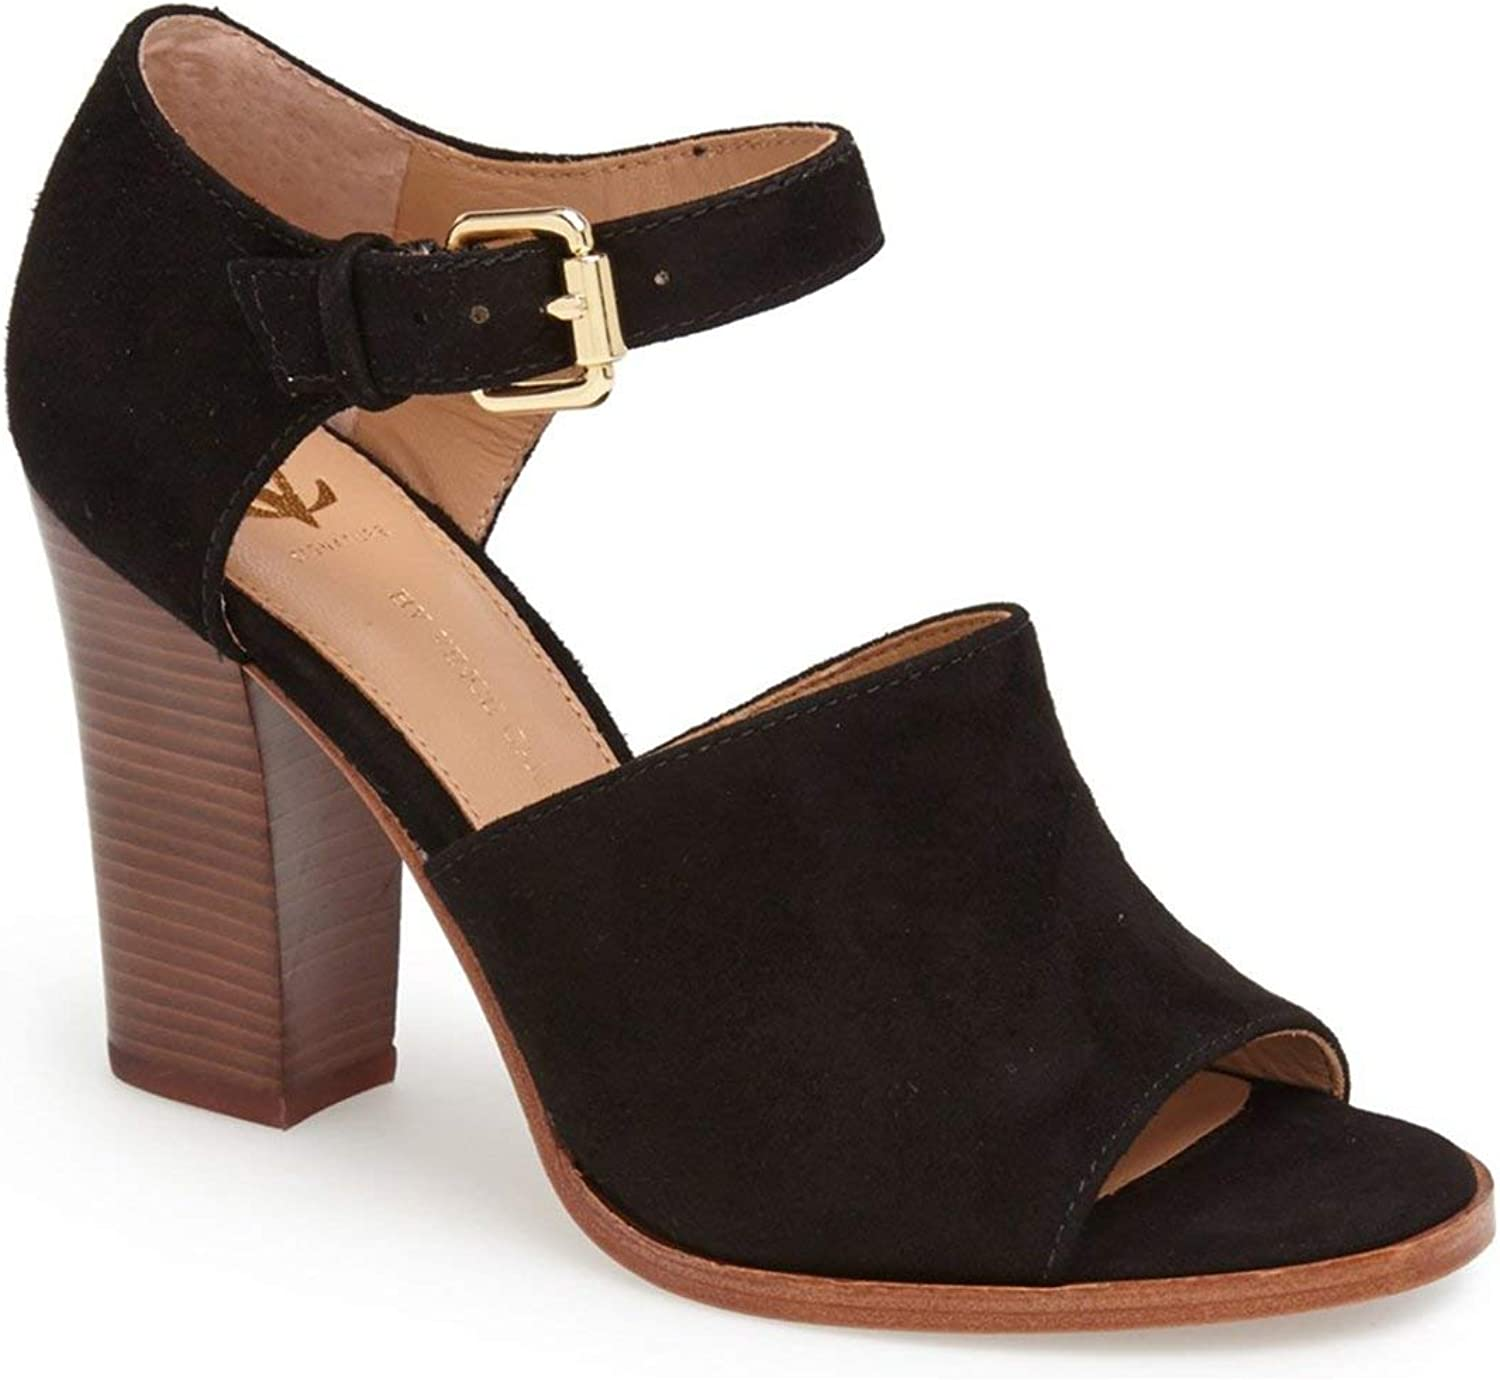 Vince Camuto Phylida Womens VI-PHYLIDA-black